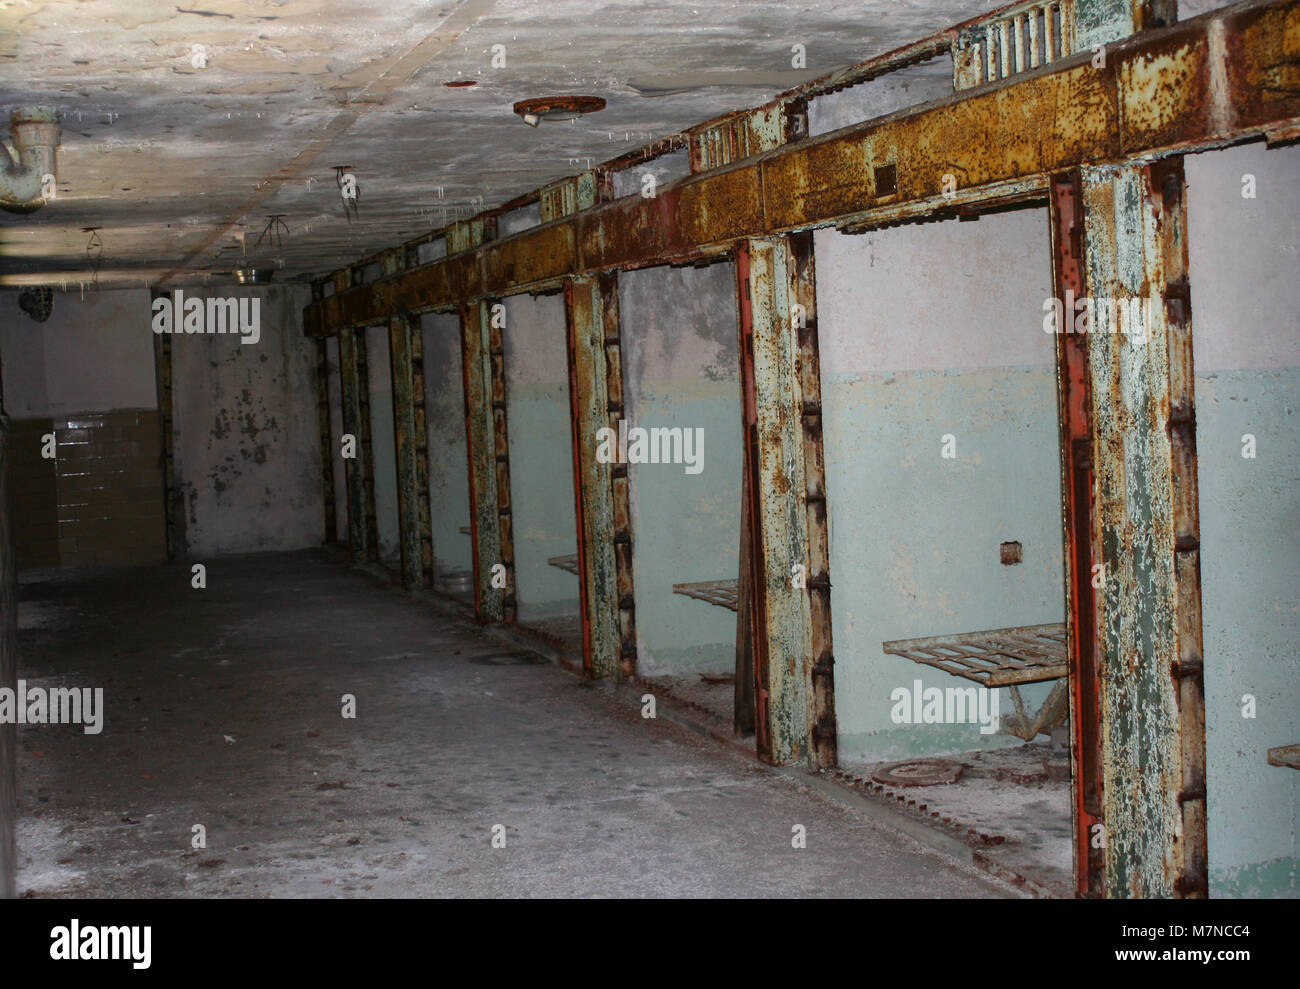 A old historic prison death row cellblock - Stock Image